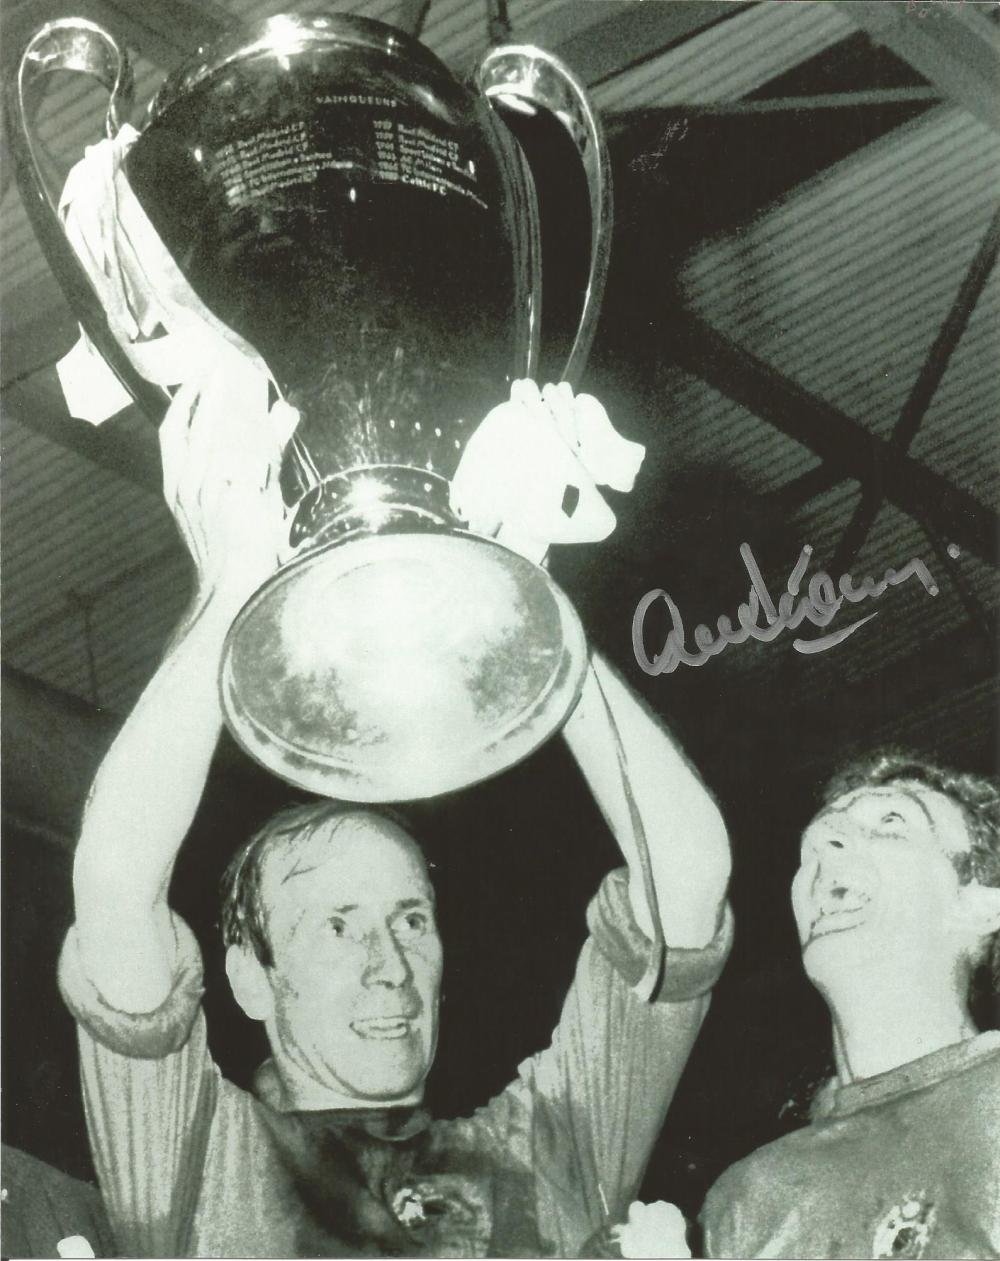 Football Alex Stepney 10x8 signed b/w photo pictured celebrating after the 1968 European cup